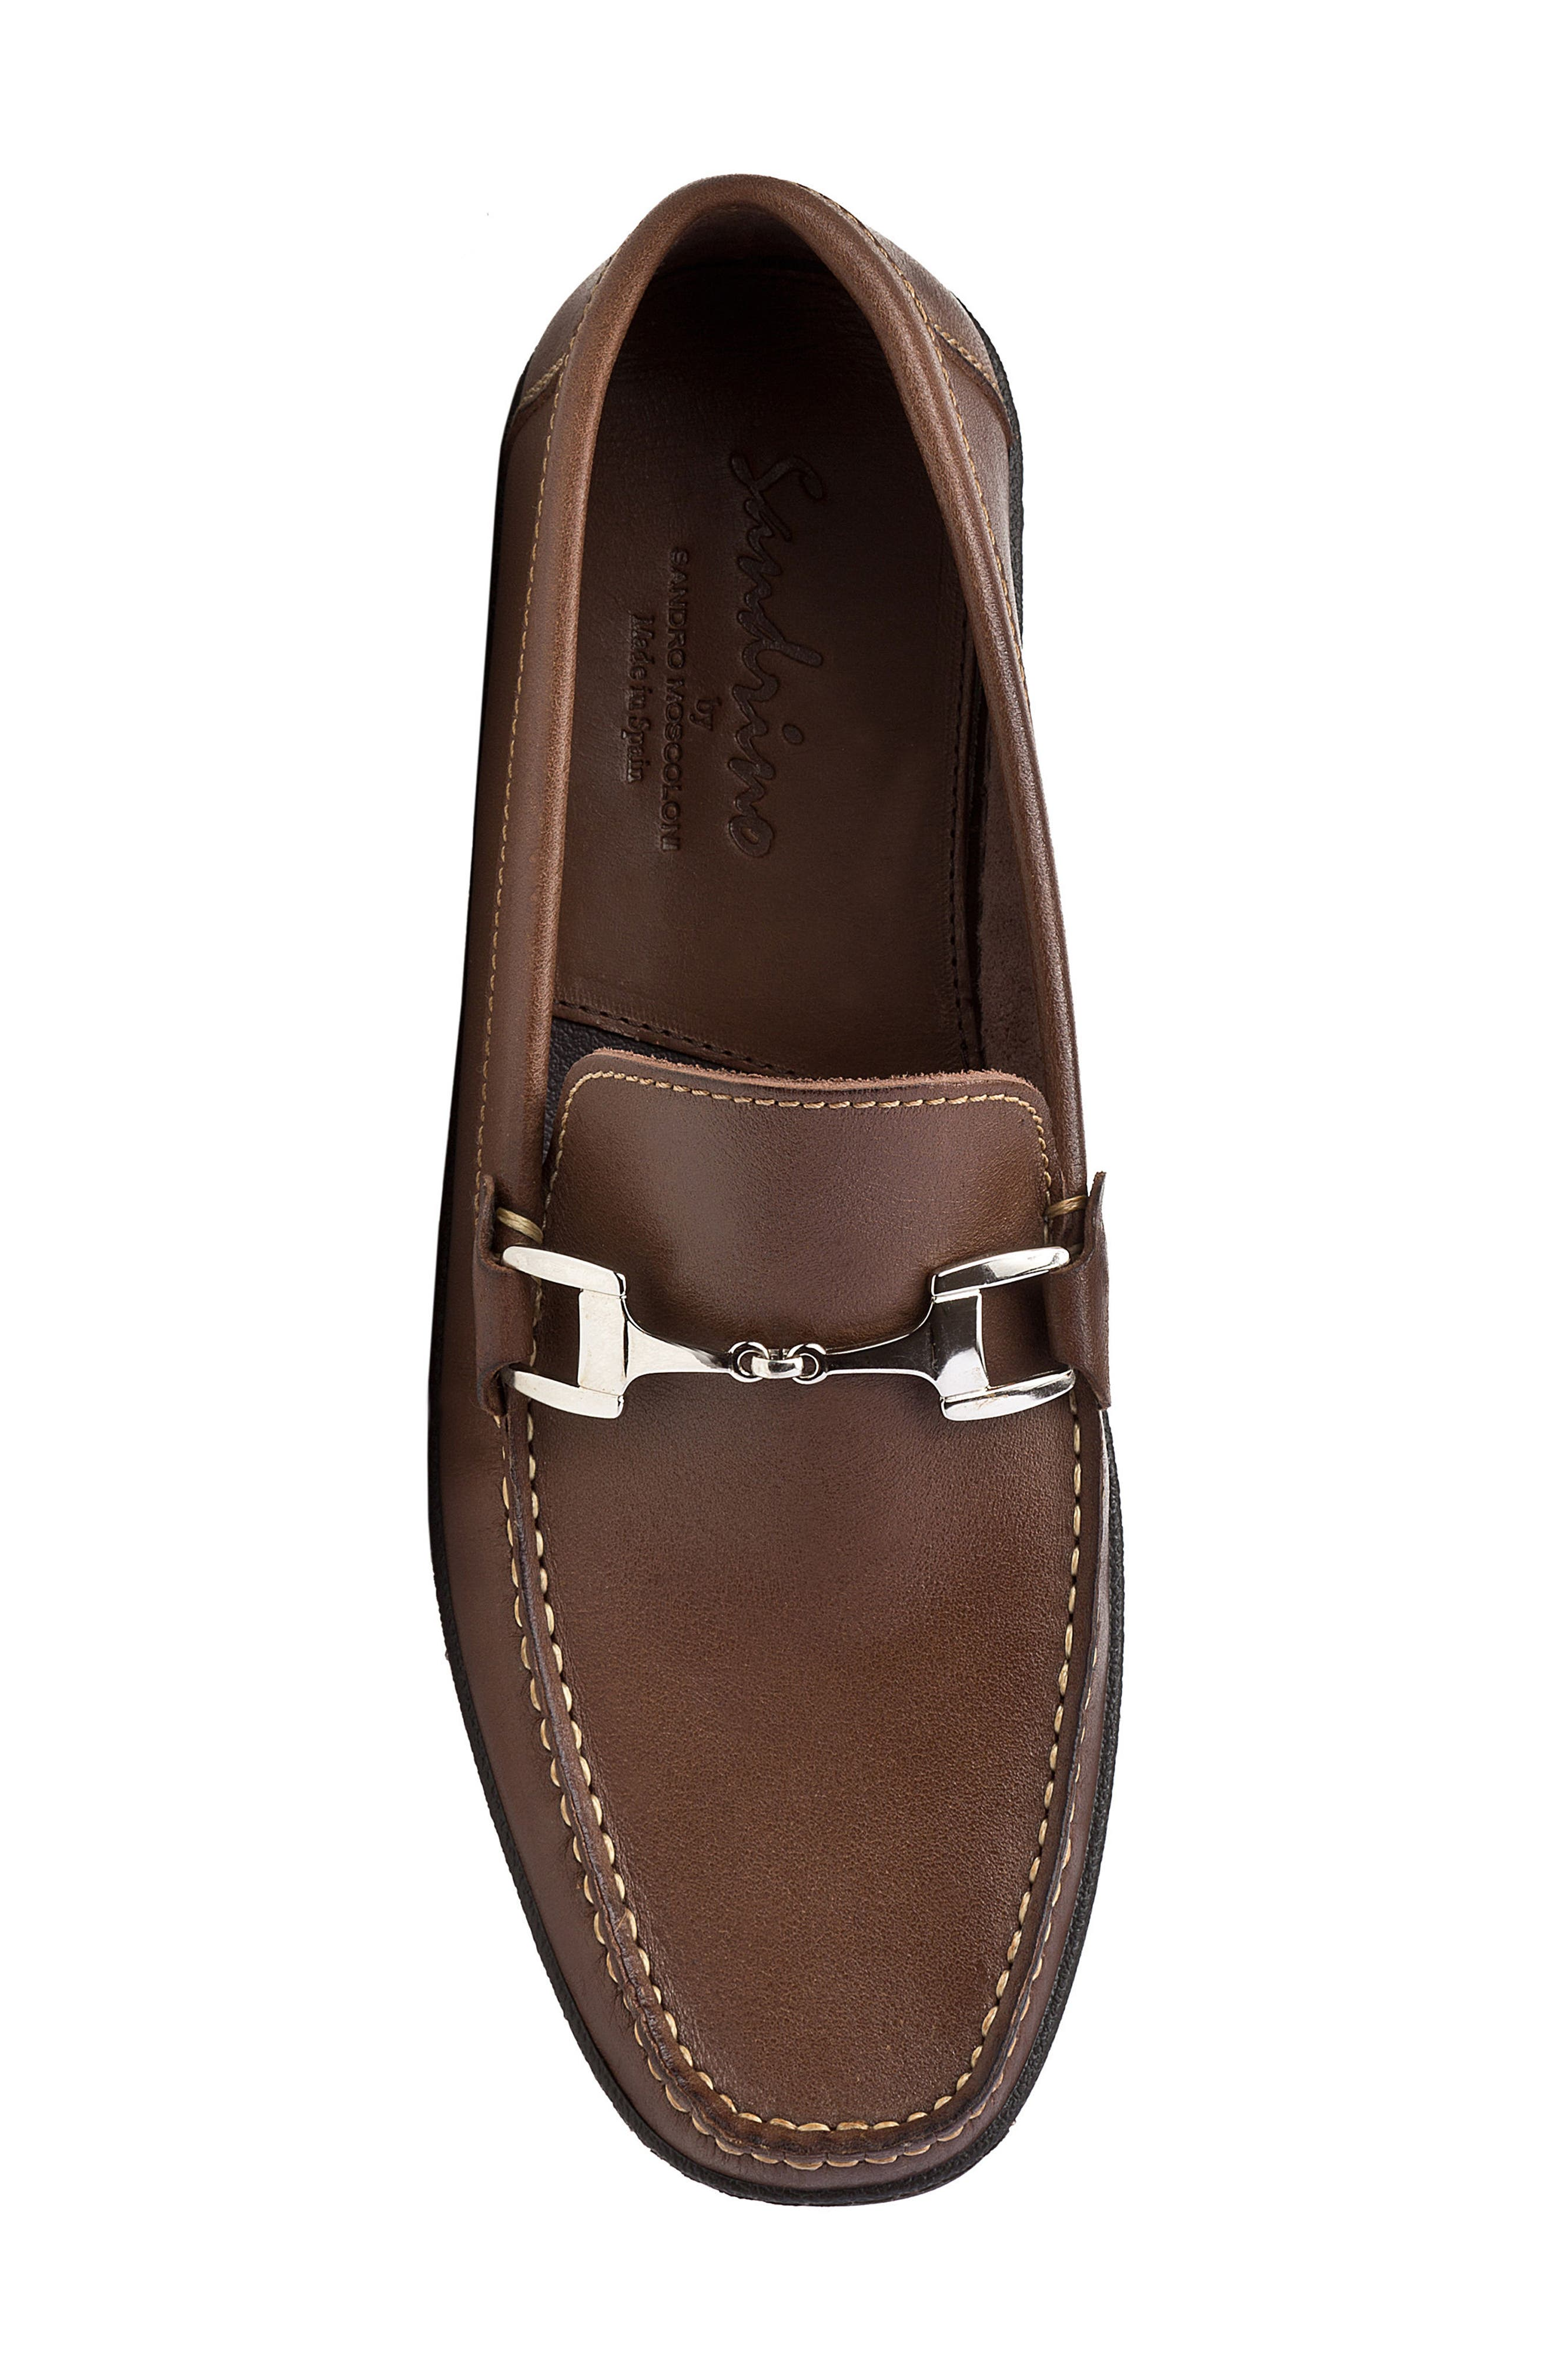 Navarro Bit Loafer,                             Alternate thumbnail 5, color,                             Brown Leather